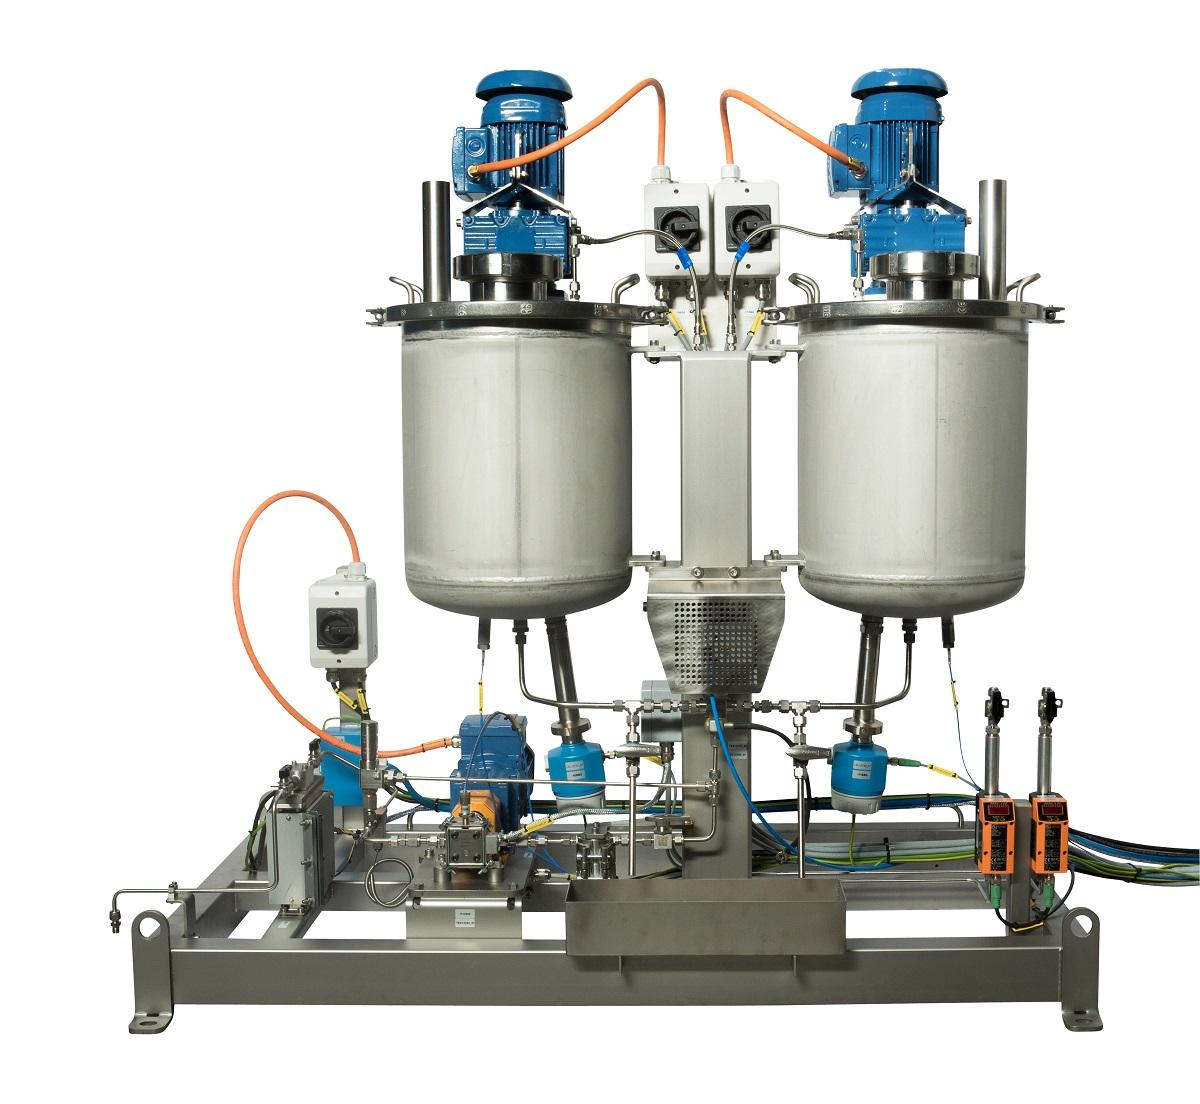 R&D suurDOS® dosing unit for an extrusion process with a product subject to degradation (aging).